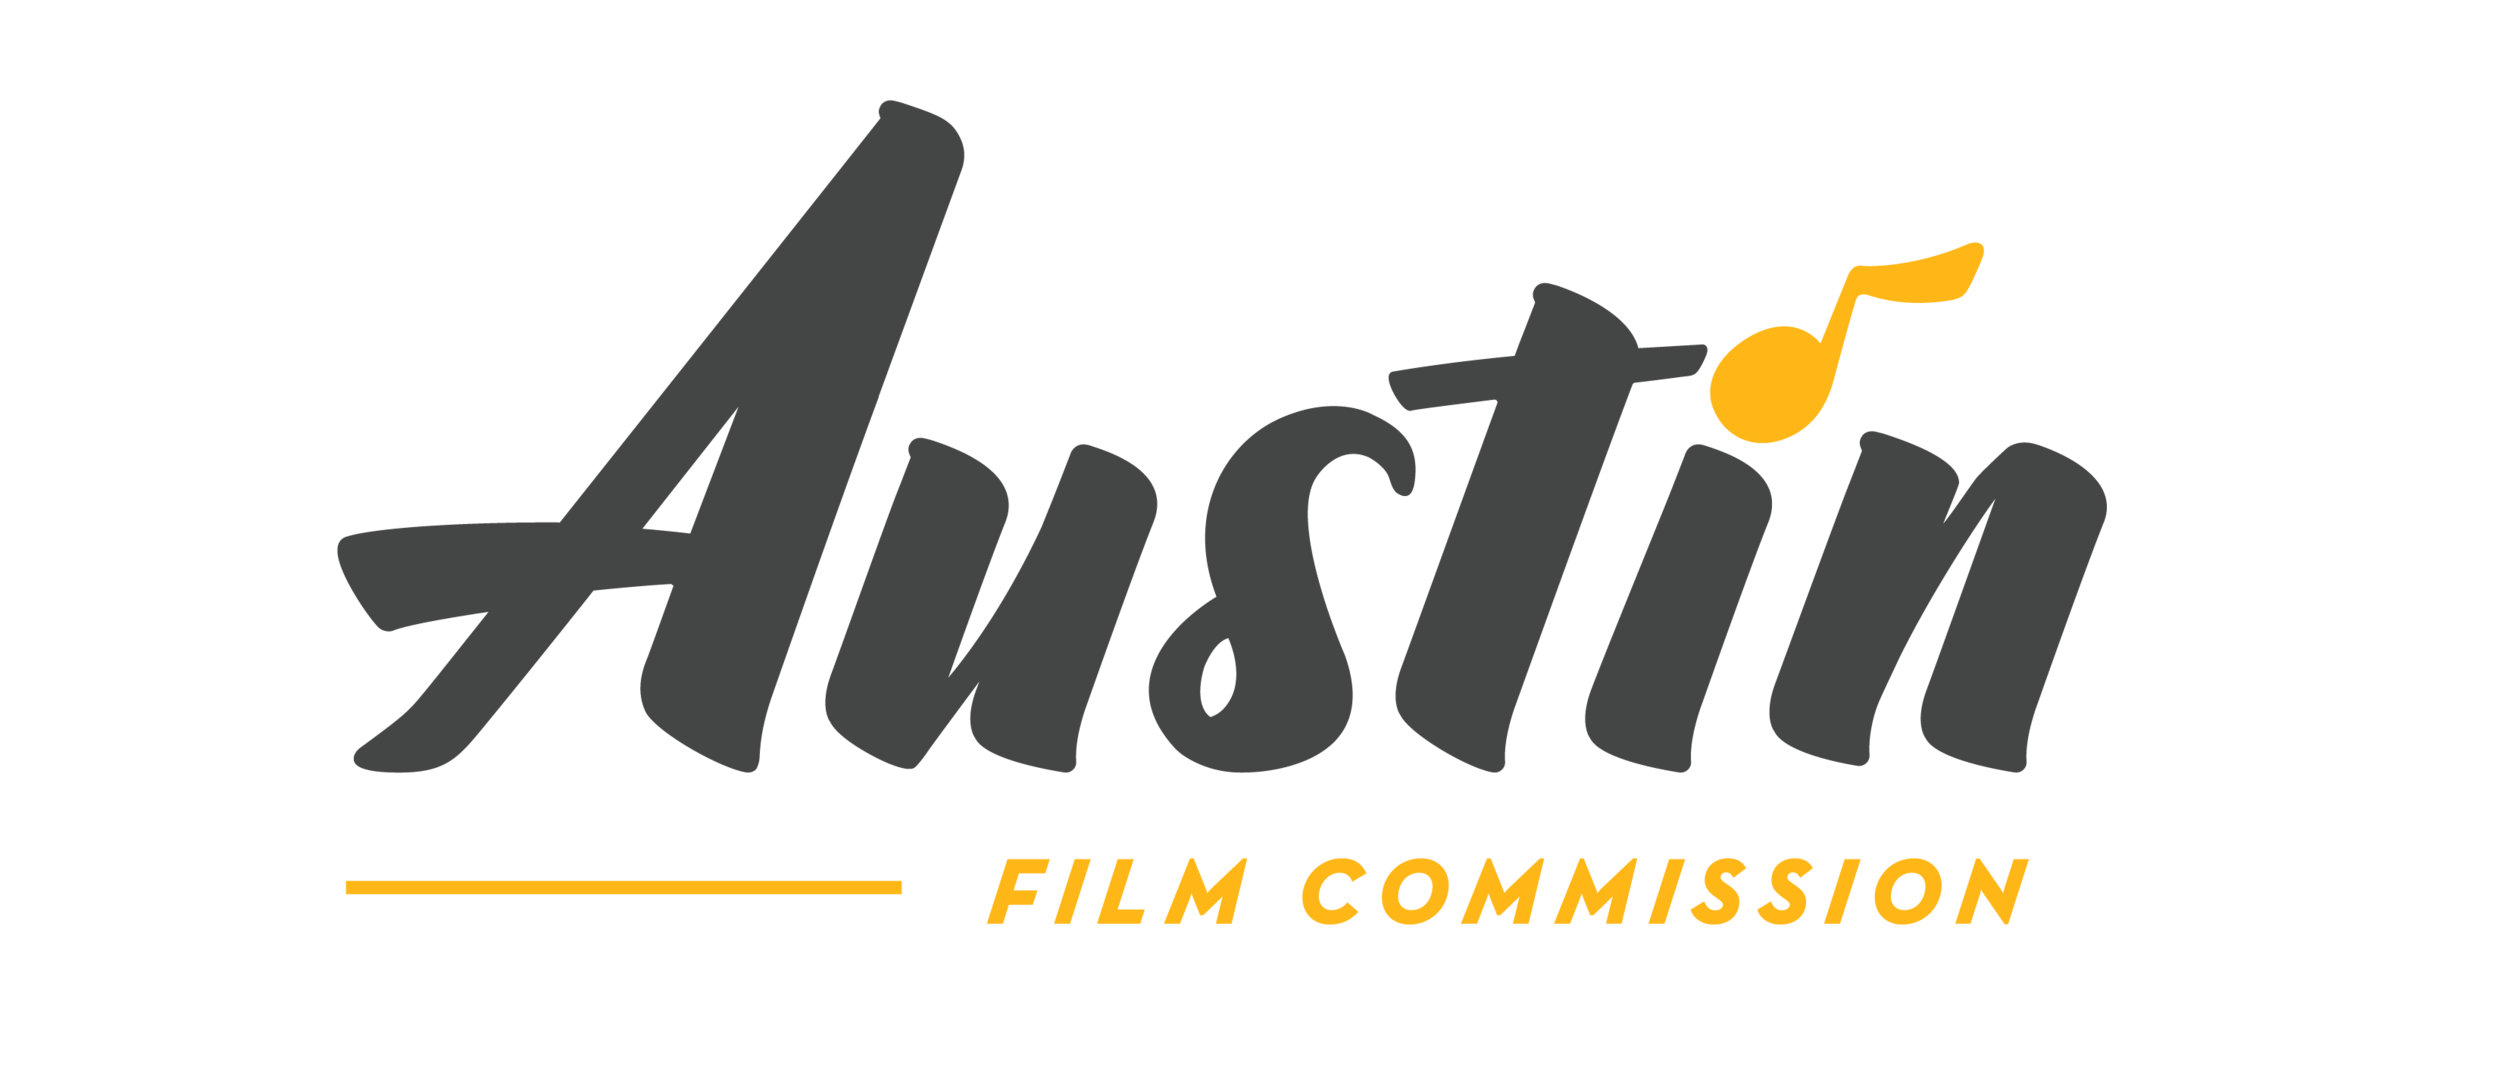 AustinFilmCommission-Color_TRANSPARENT.png